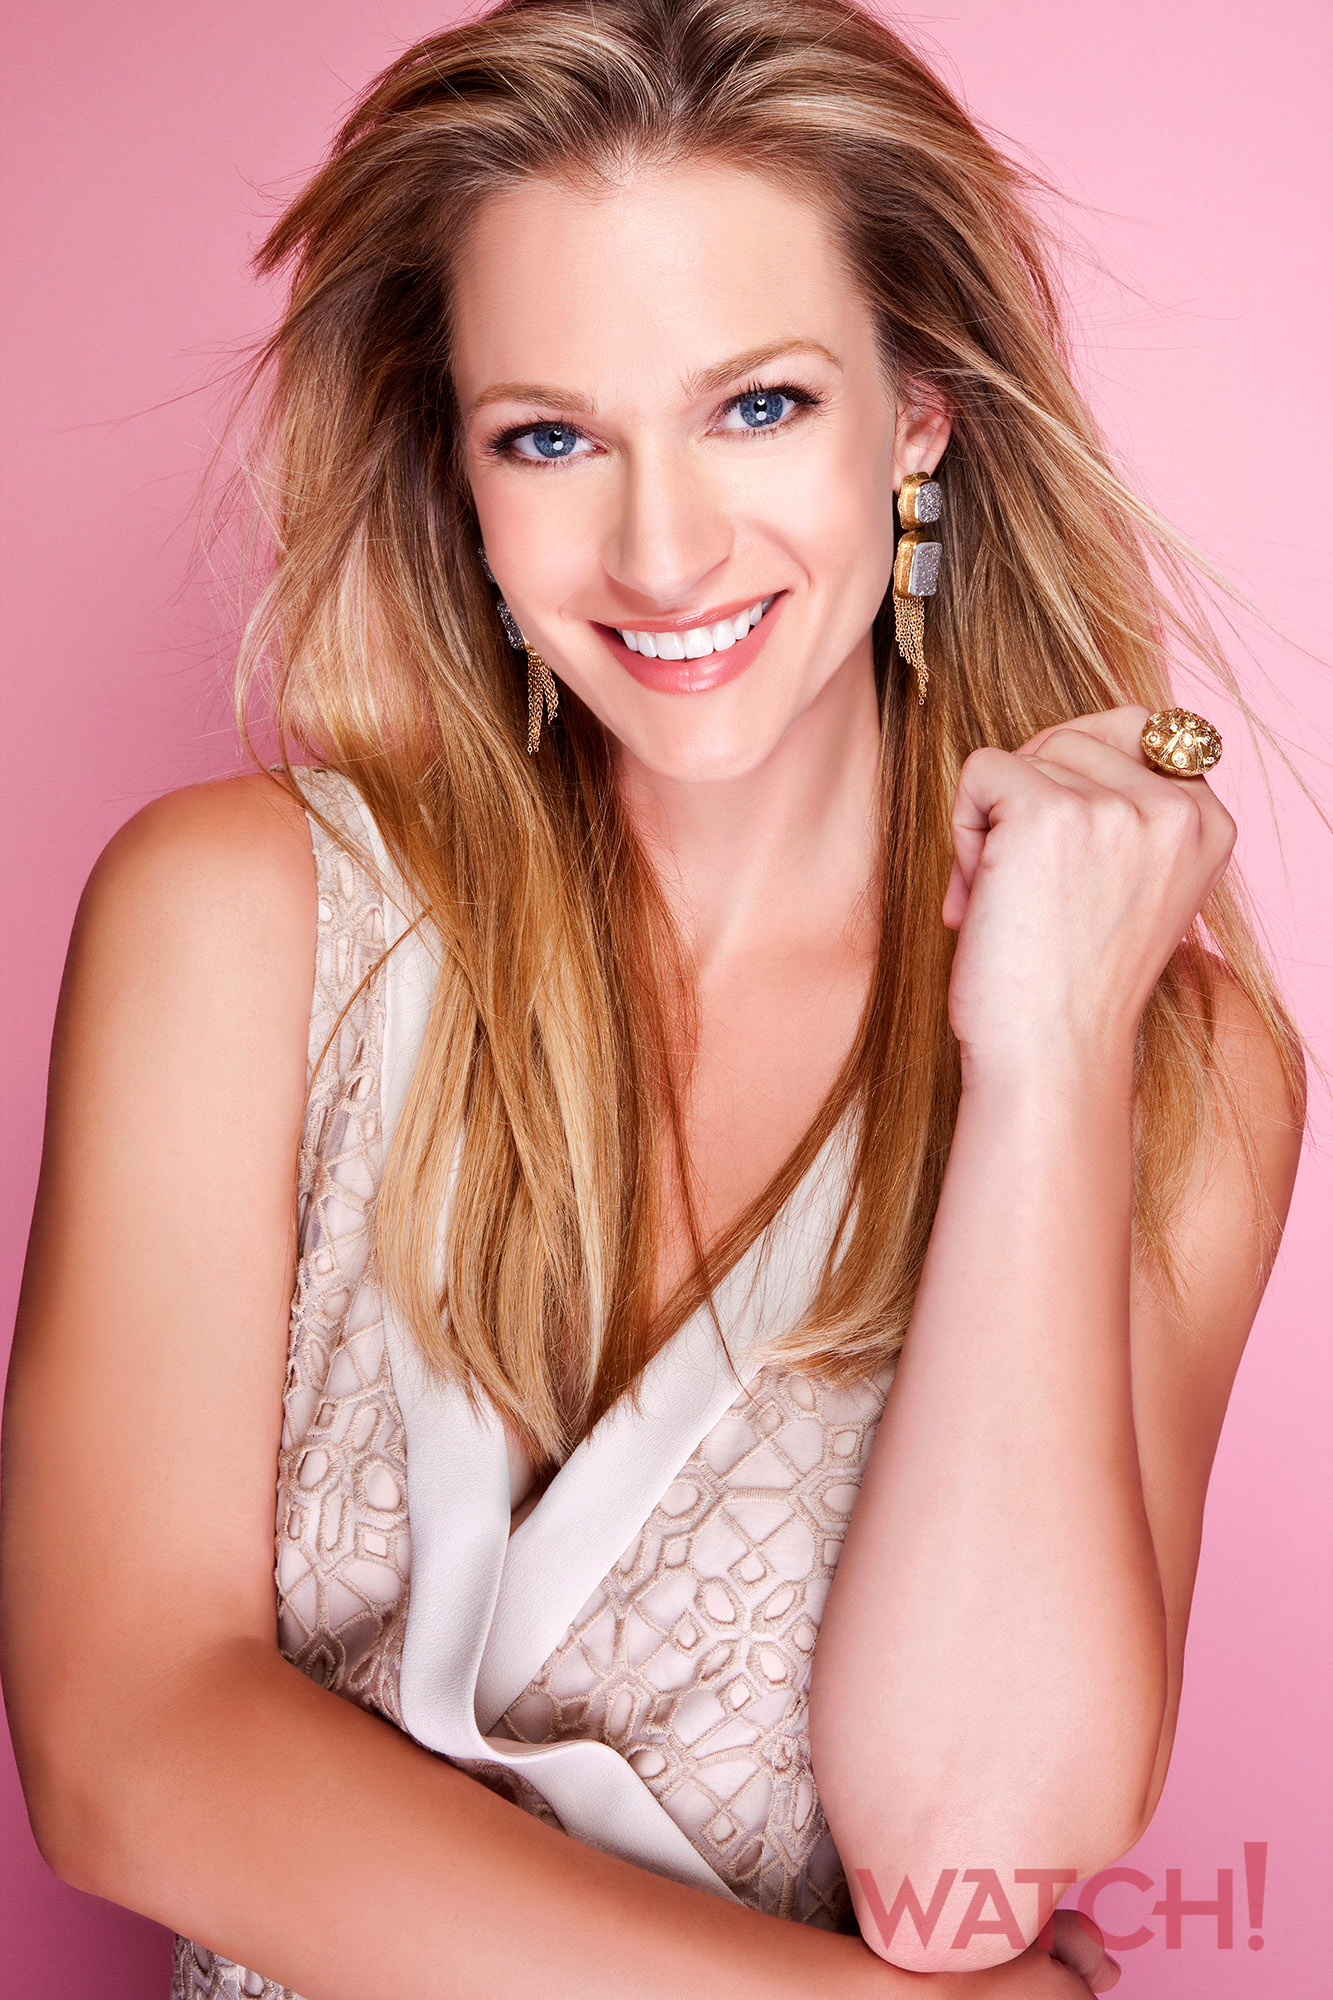 These pretty photos of A.J. Cook prove that she's all that!